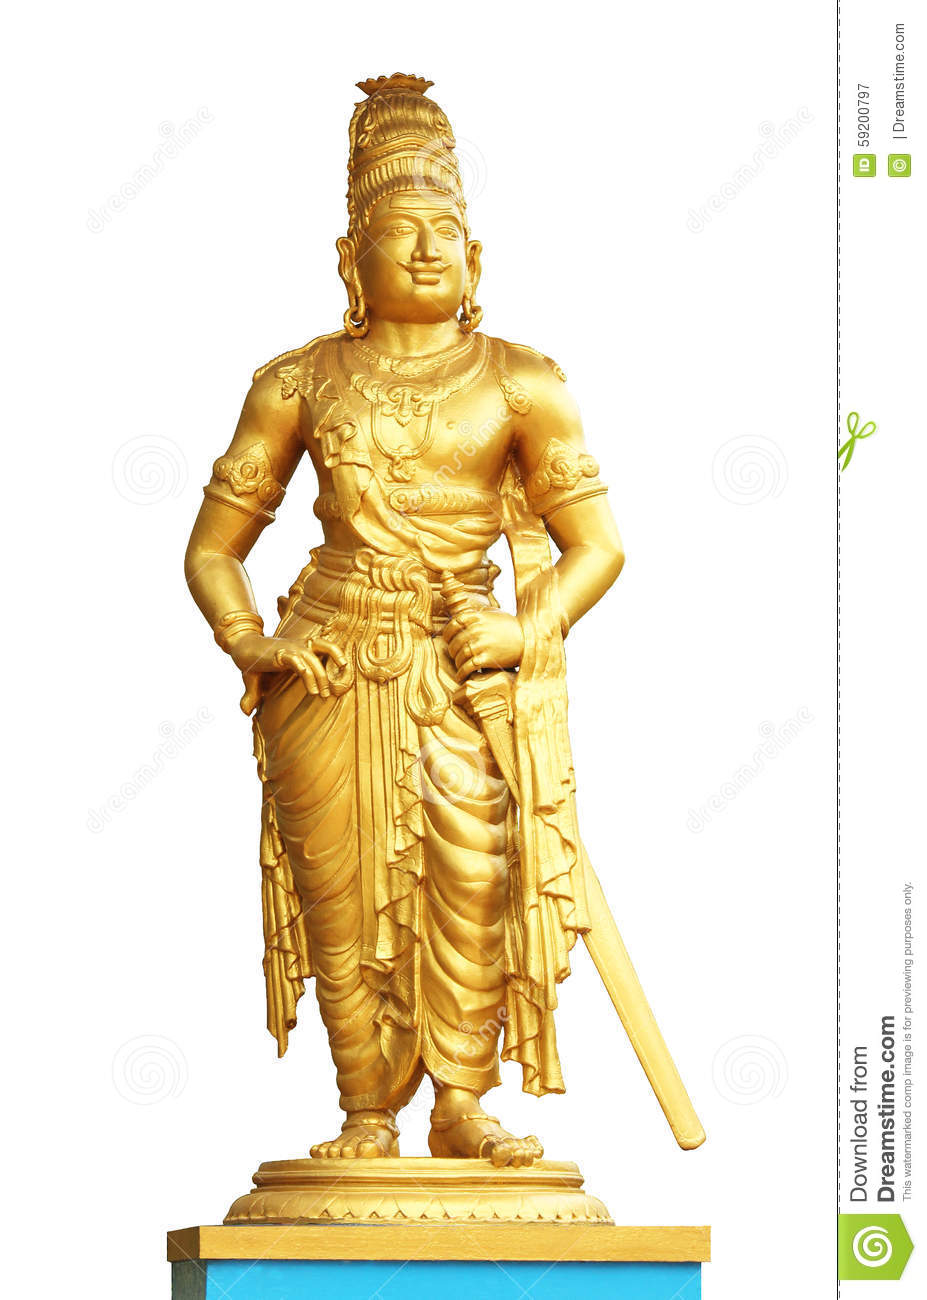 The statue of king raja raja cholan